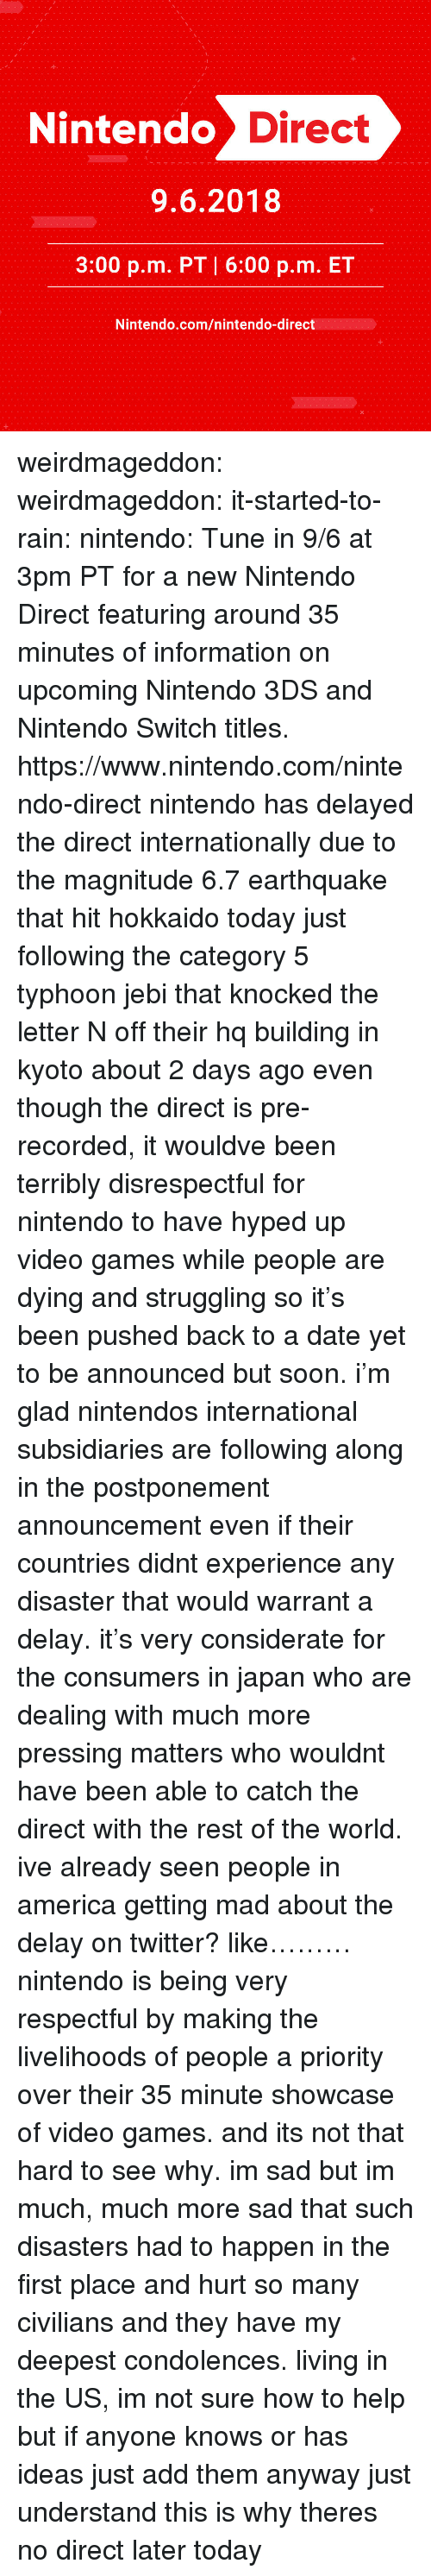 kyoto: -1  1  Nintendo D  irect  9.6.2018  3:00 p.m. PT 6:00 p.m. ET  Nintendo.com/nintendo-direct weirdmageddon:  weirdmageddon:  it-started-to-rain:  nintendo:  Tune in 9/6 at 3pm PT for a new Nintendo Direct featuring around 35 minutes of information on upcoming Nintendo 3DS and Nintendo Switch titles.   https://www.nintendo.com/nintendo-direct     nintendo has delayed the direct internationally due to the magnitude 6.7 earthquake that hit hokkaido today just following the category 5 typhoon jebi that knocked the letter N off their hq building in kyoto about 2 days ago even though the direct is pre-recorded, it wouldve been terribly disrespectful for nintendo to have hyped up video games while people are dying and struggling so it's been pushed back to a date yet to be announced but soon. i'm glad nintendos international subsidiaries are following along in the postponement announcement even if their countries didnt experience any disaster that would warrant a delay. it's very considerate for the consumers in japan who are dealing with much more pressing matters who wouldnt have been able to catch the direct with the rest of the world. ive already seen people in america getting mad about the delay on twitter? like………nintendo is being very respectful by making the livelihoods of people a priority over their 35 minute showcase of video games. and its not that hard to see why. im sad but im much, much more sad that such disasters had to happen in the first place and hurt so many civilians and they have my deepest condolences. living in the US, im not sure how to help but if anyone knows or has ideas just add them anyway just understand this is why theres no direct later today